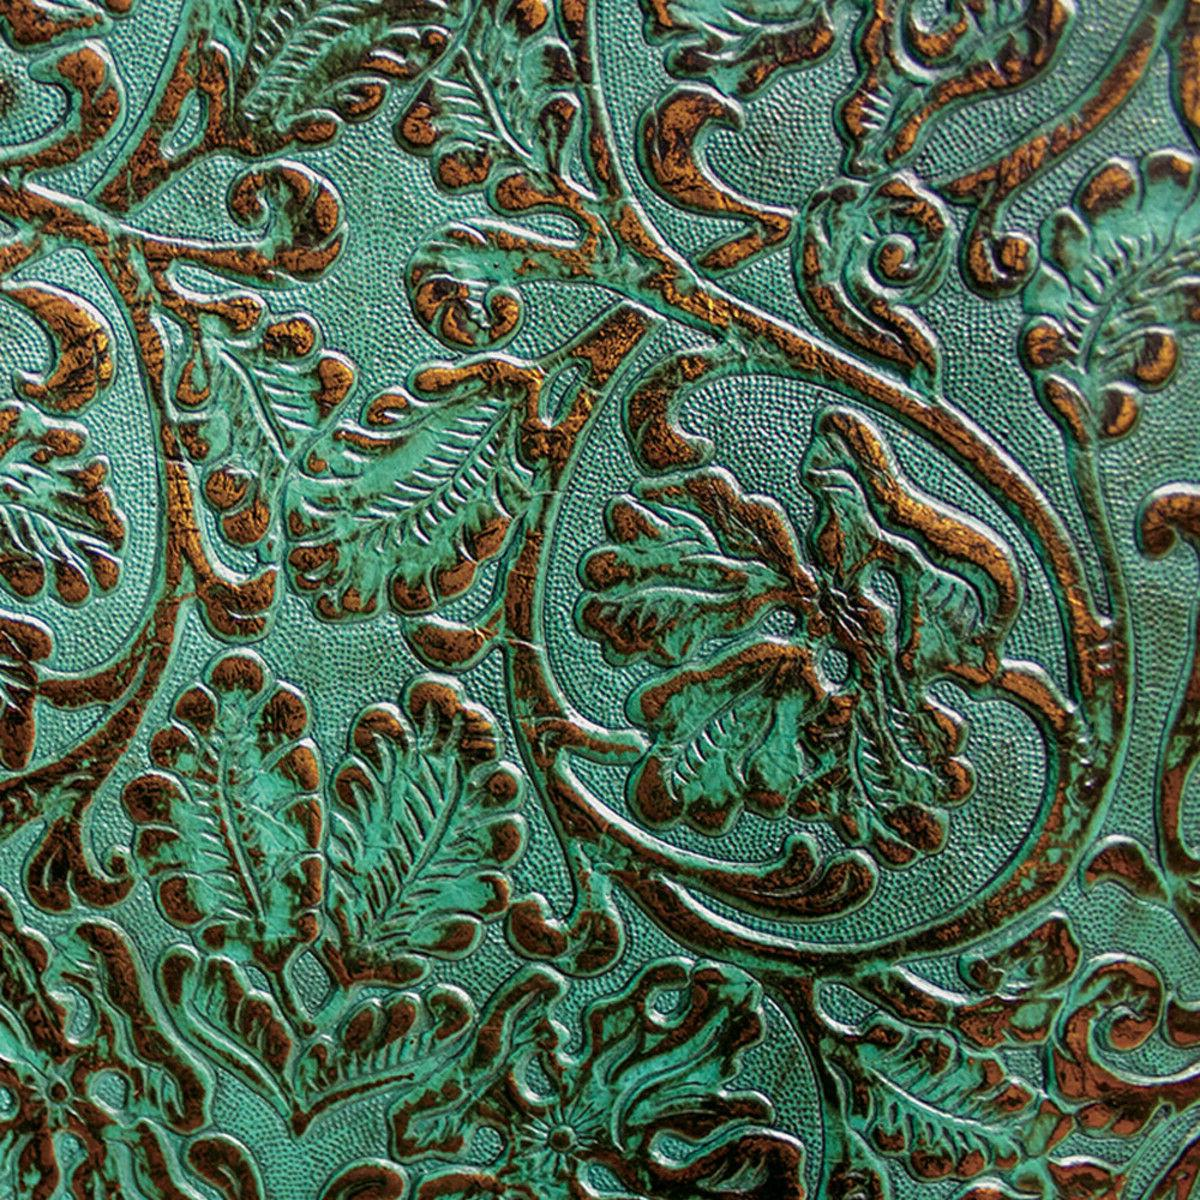 Turquoise & Copper 2/3oz Floral Embossed Cowhide Leather 12""